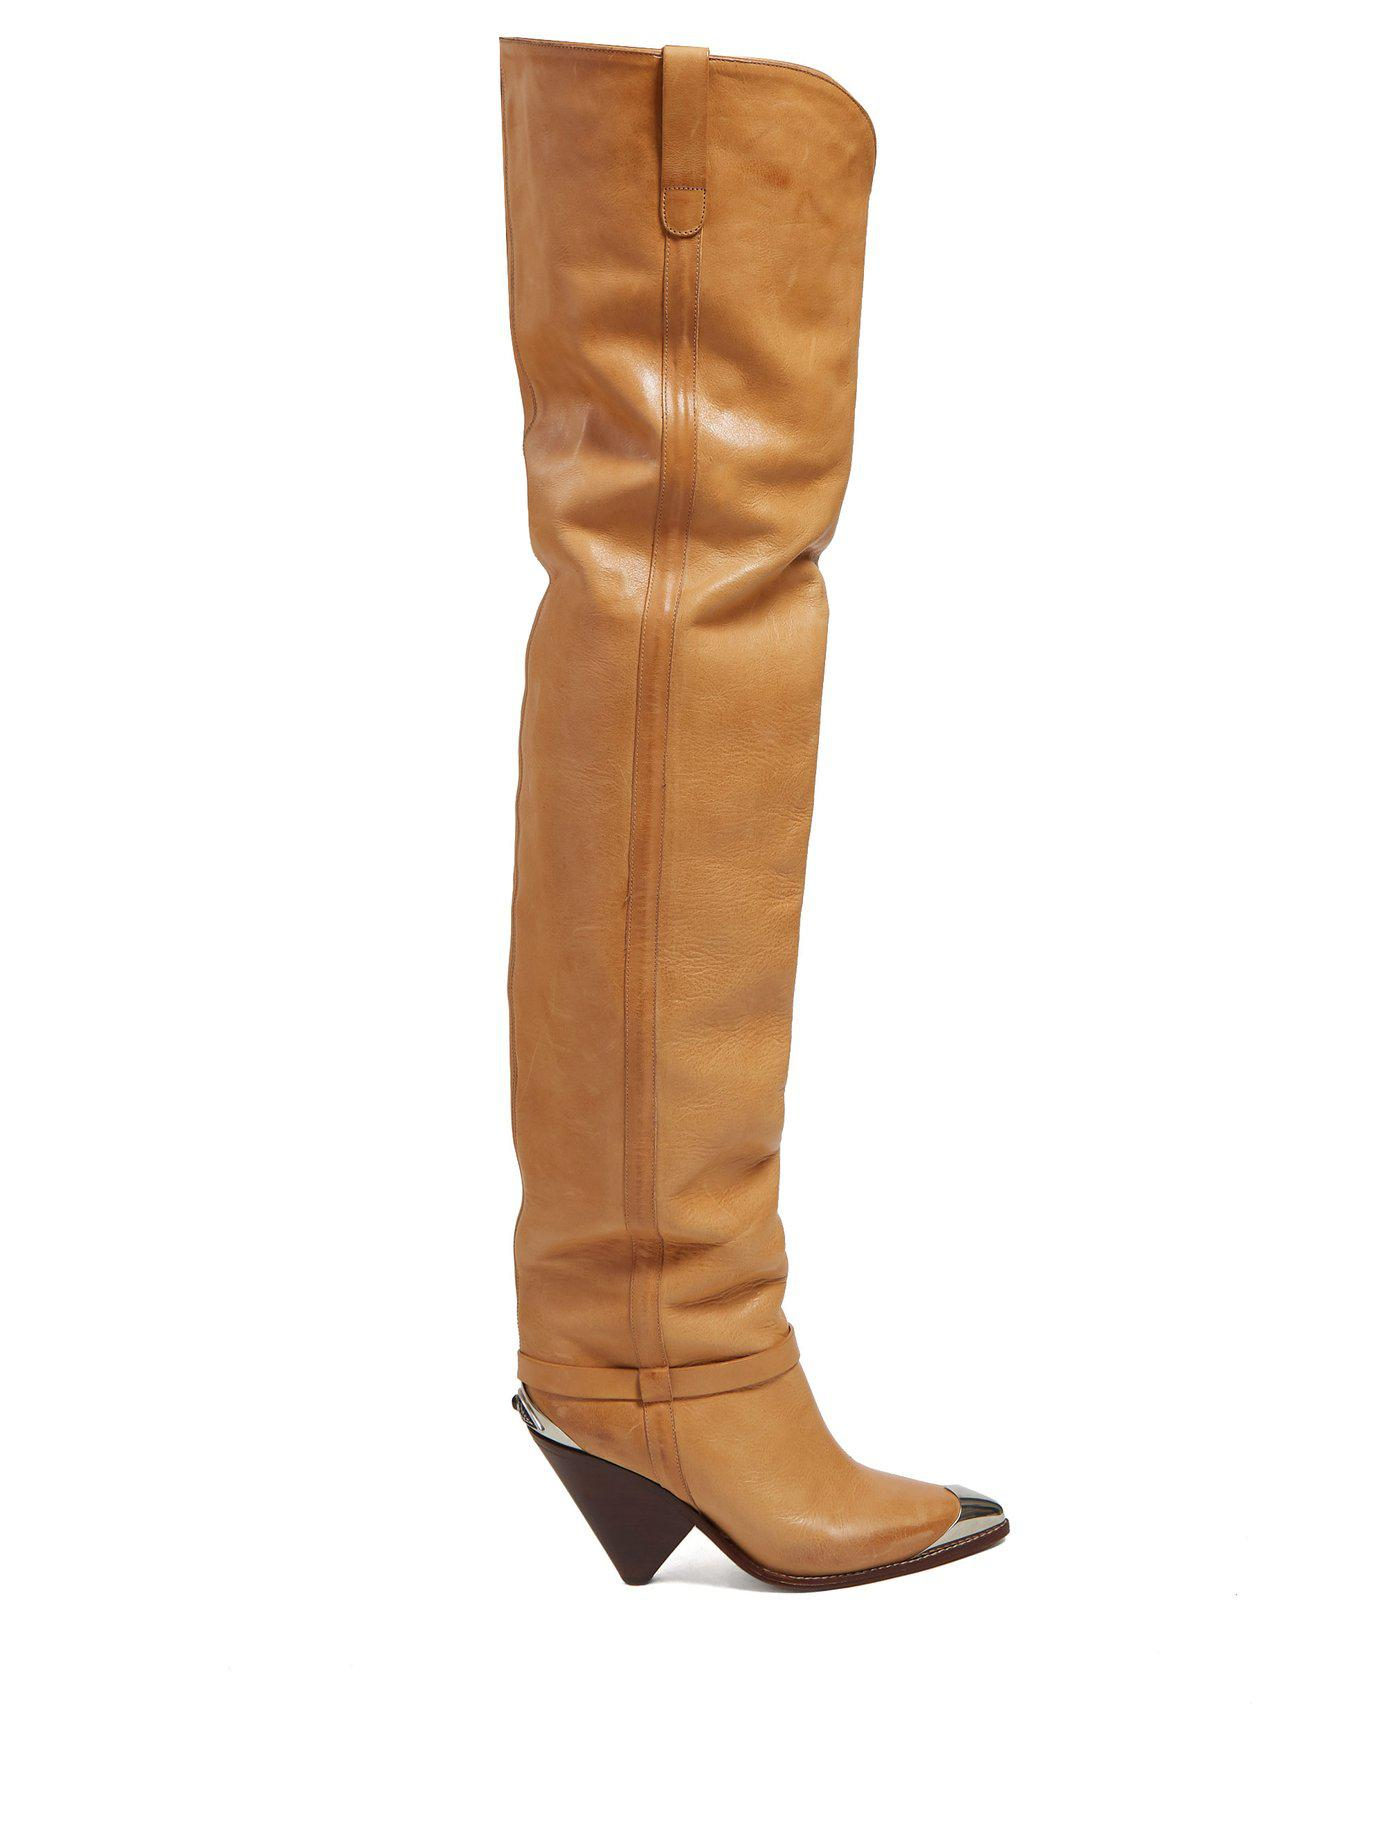 8b23aee3026 Lyst - Isabel Marant Lafsten Thigh High Leather Boots in Brown